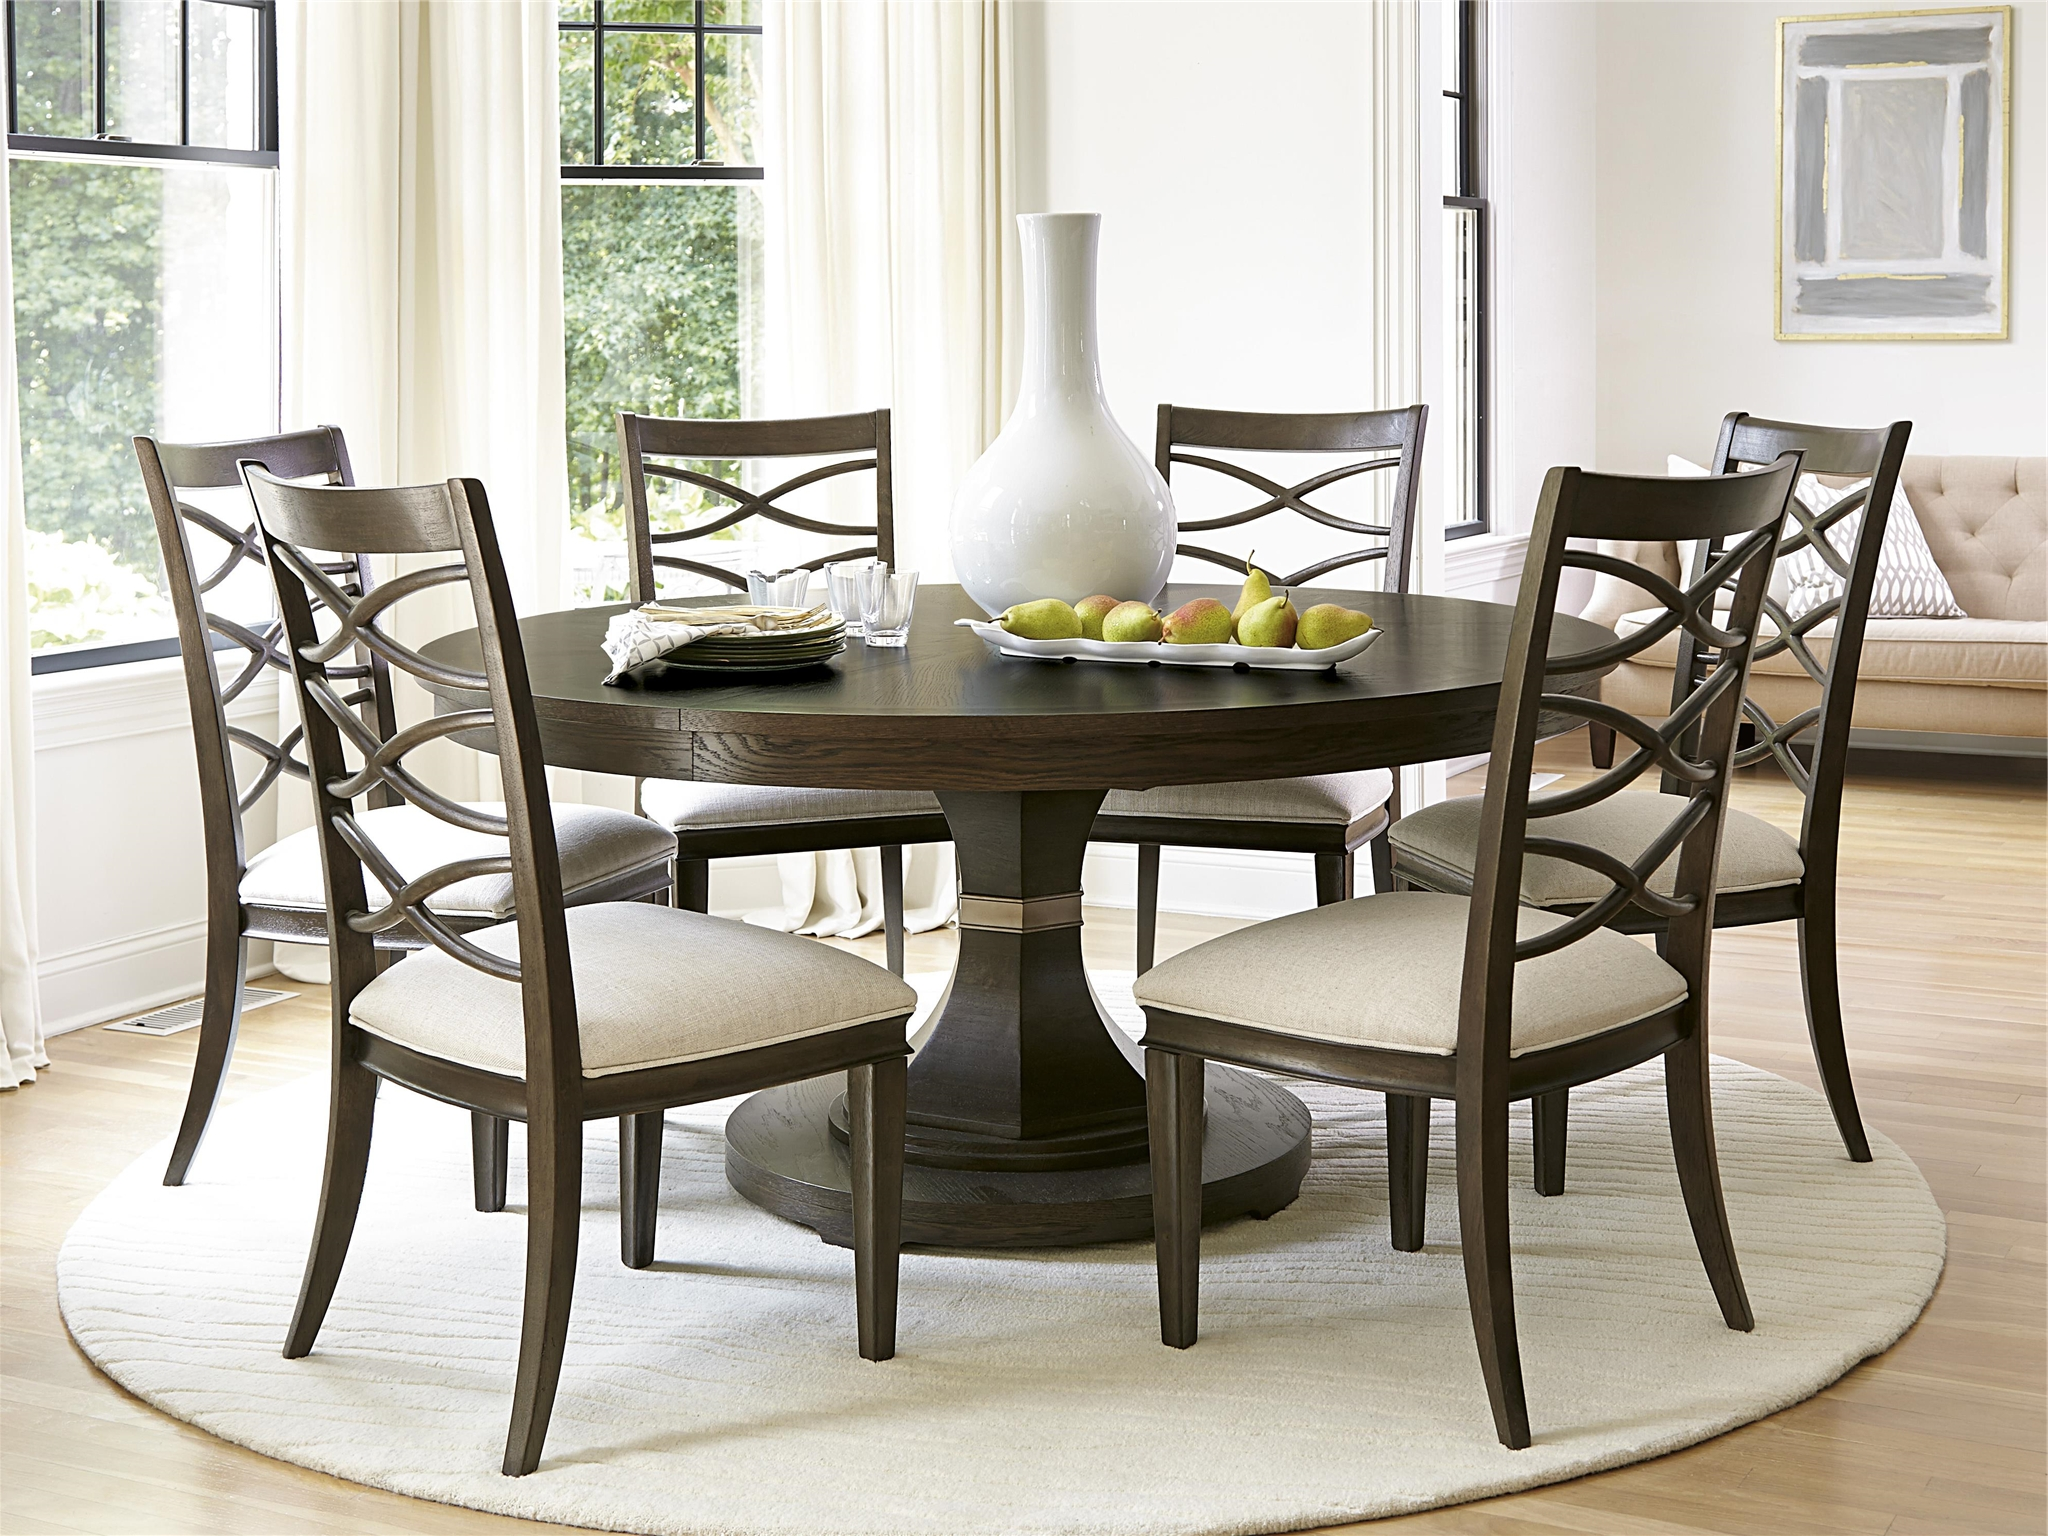 Brilliant Ideas Of Round Dining Room Table With Grady Round Dining In Recent Grady Round Dining Tables (View 3 of 25)